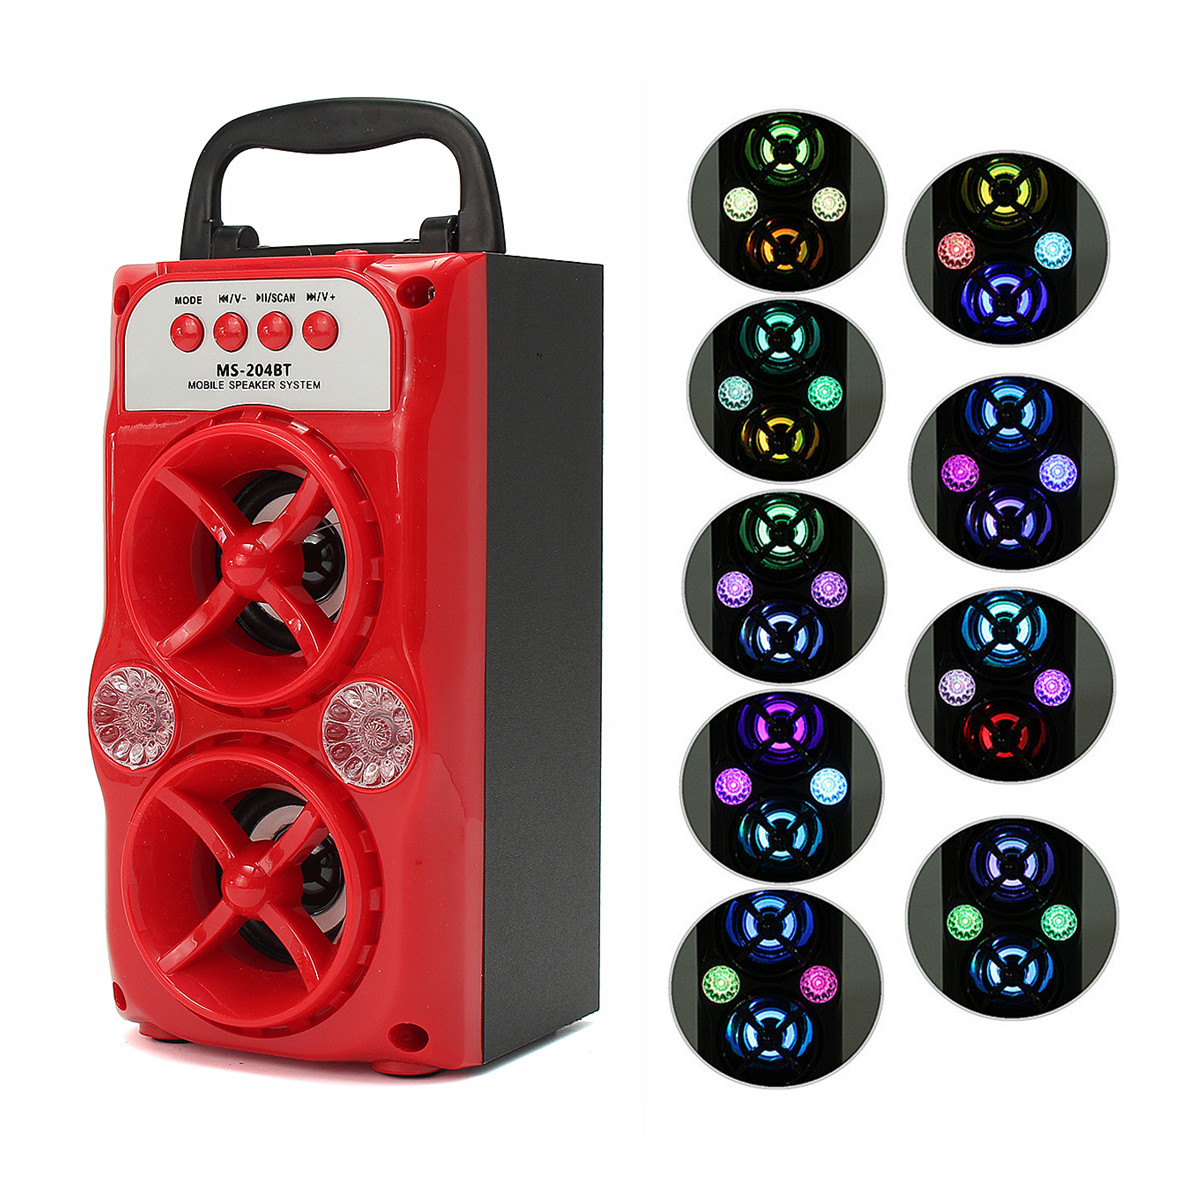 Portable Wireless bluetooth Stereo Party Speaker Rechargeable With USB/TF/AUX/FM Radio LED Indoor Outdoor Home gadget Music Player Super Bass Red